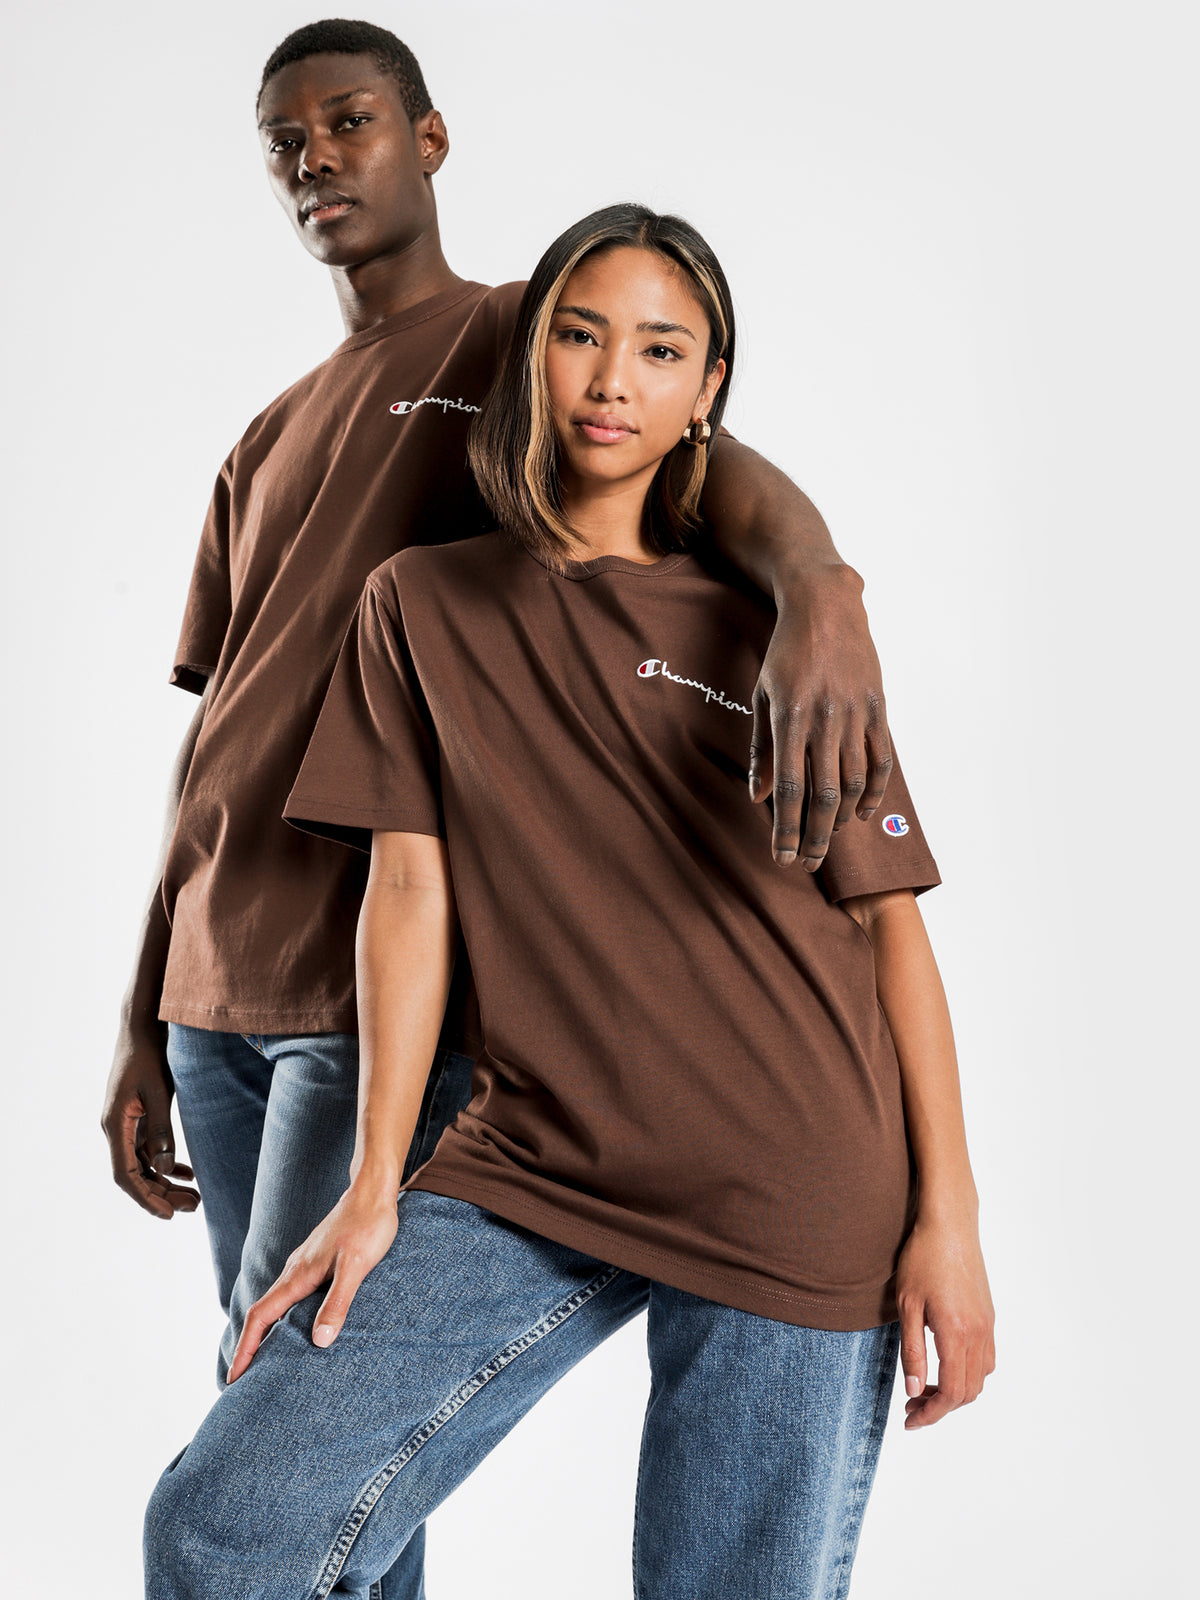 Heritage T-Shirt in Coco Loco Brown